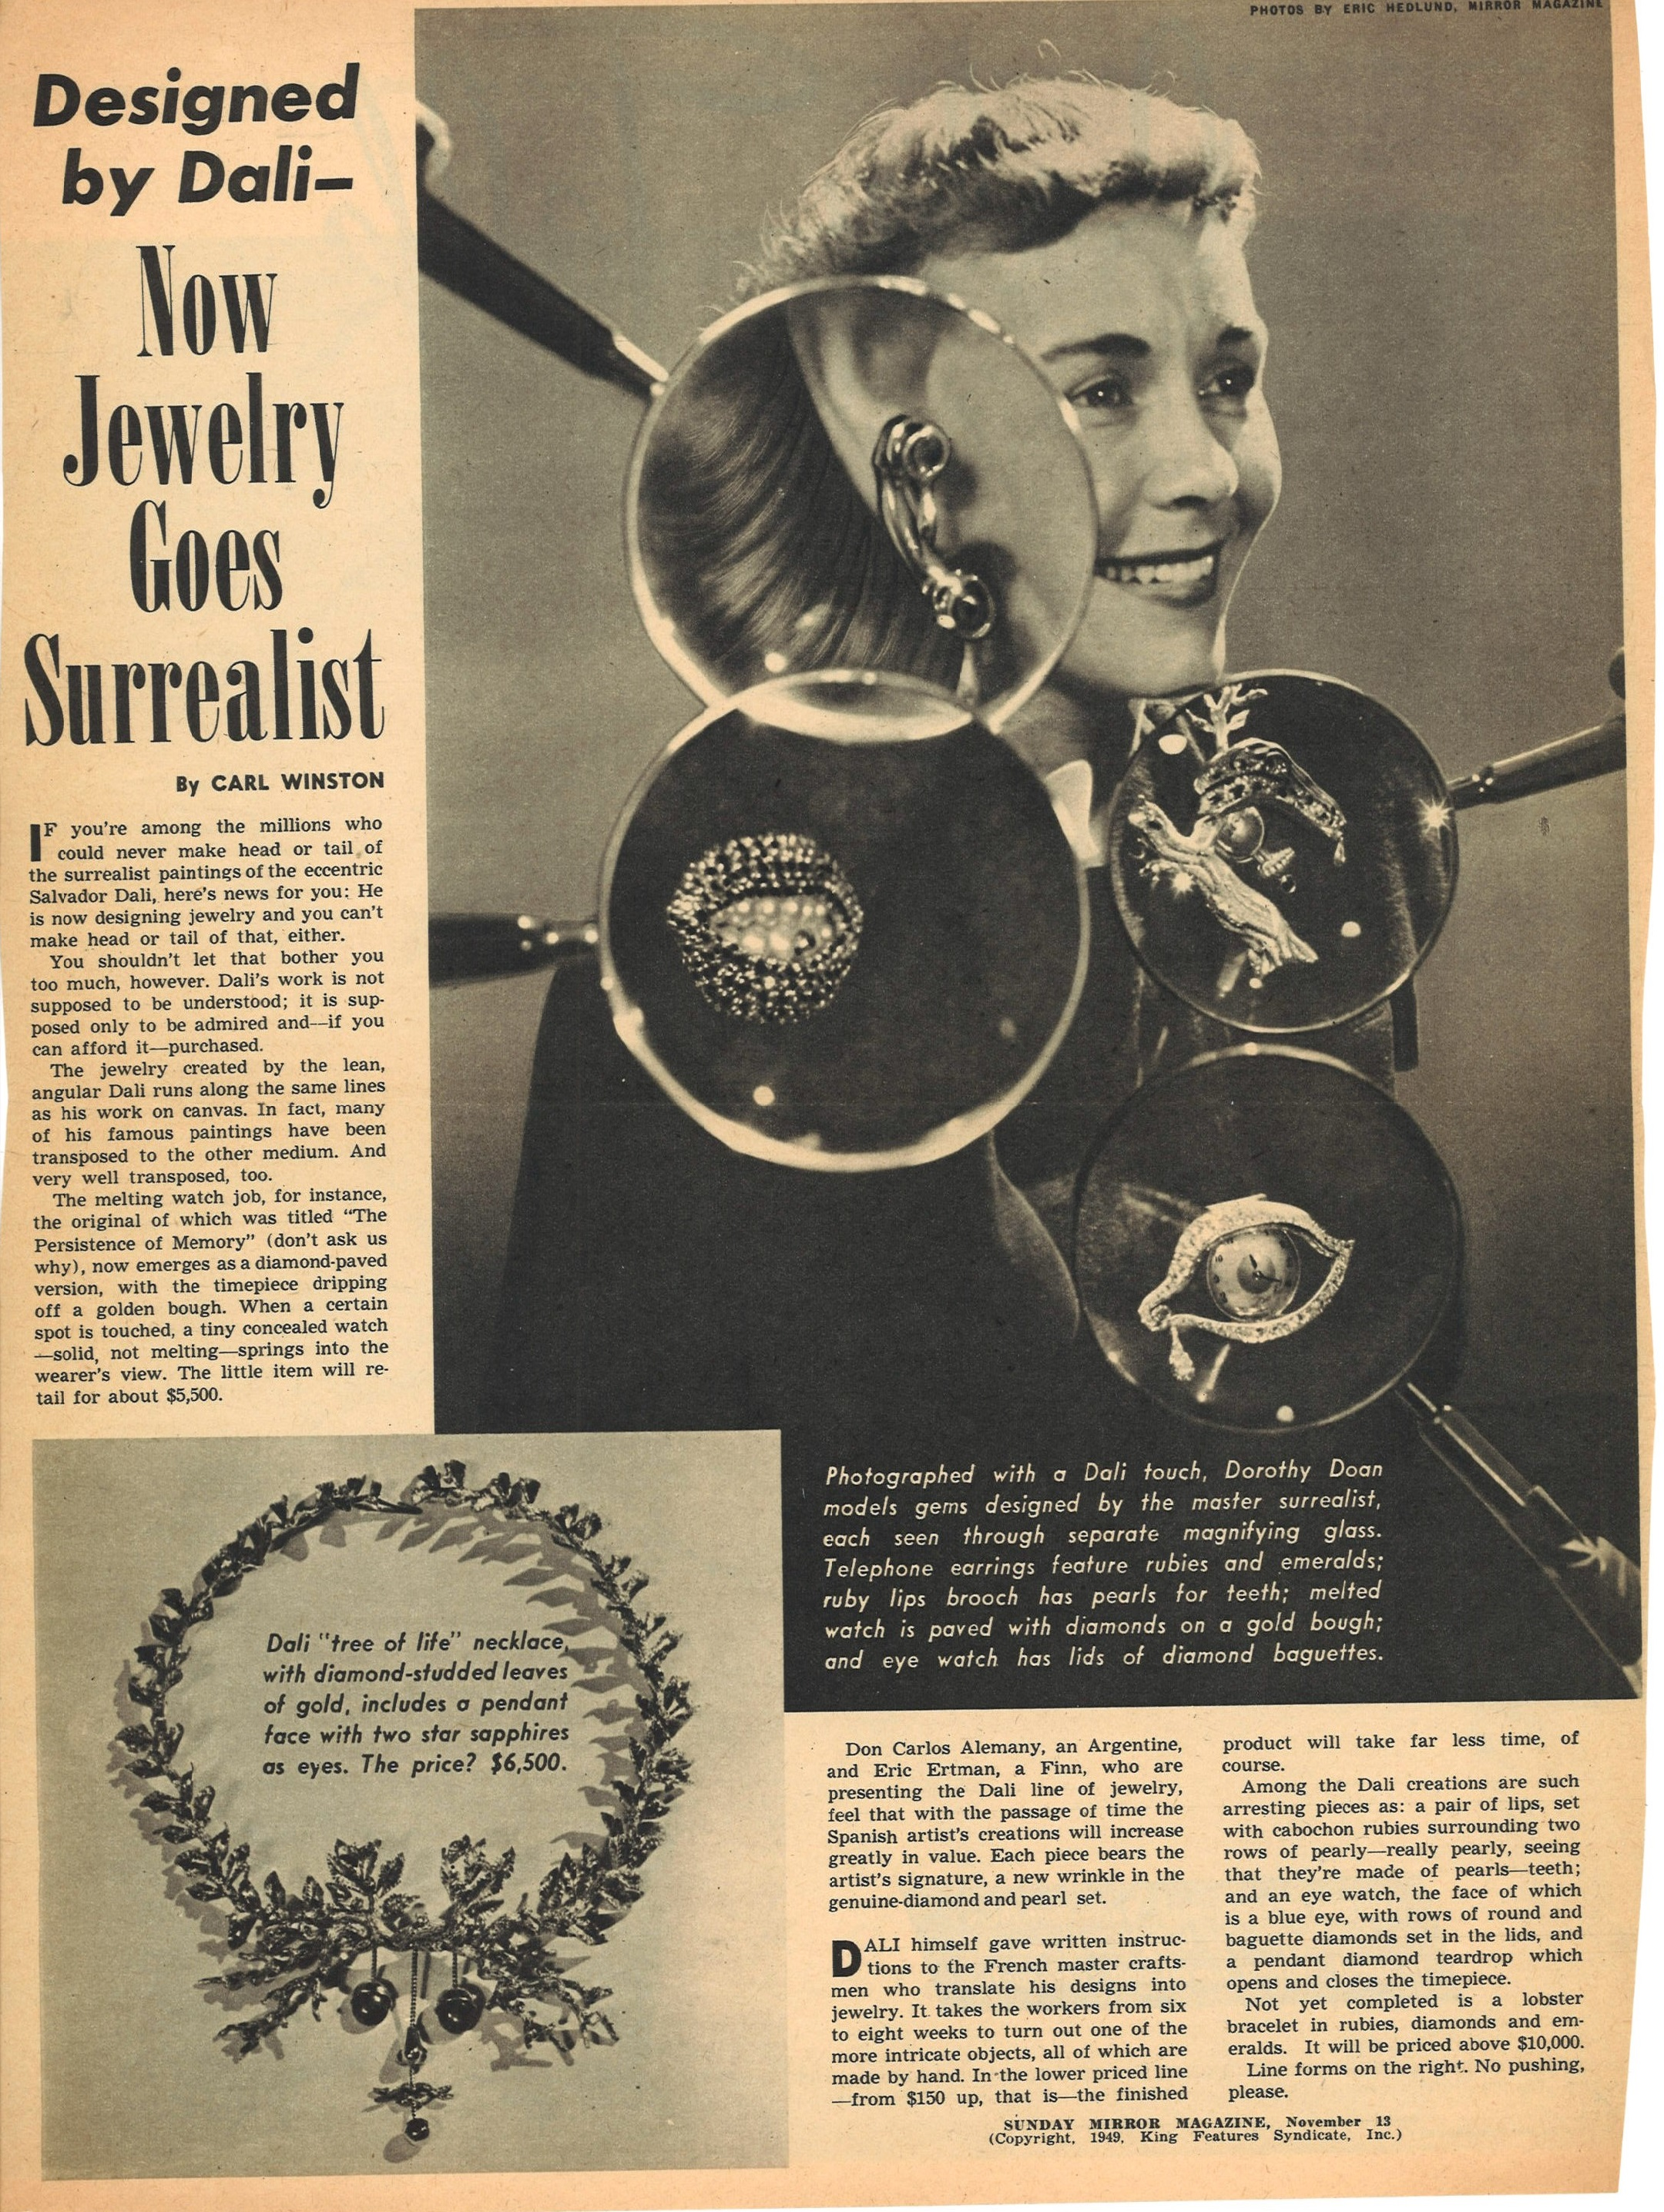 art and artist files reveal surrealist jewels designed by salvador